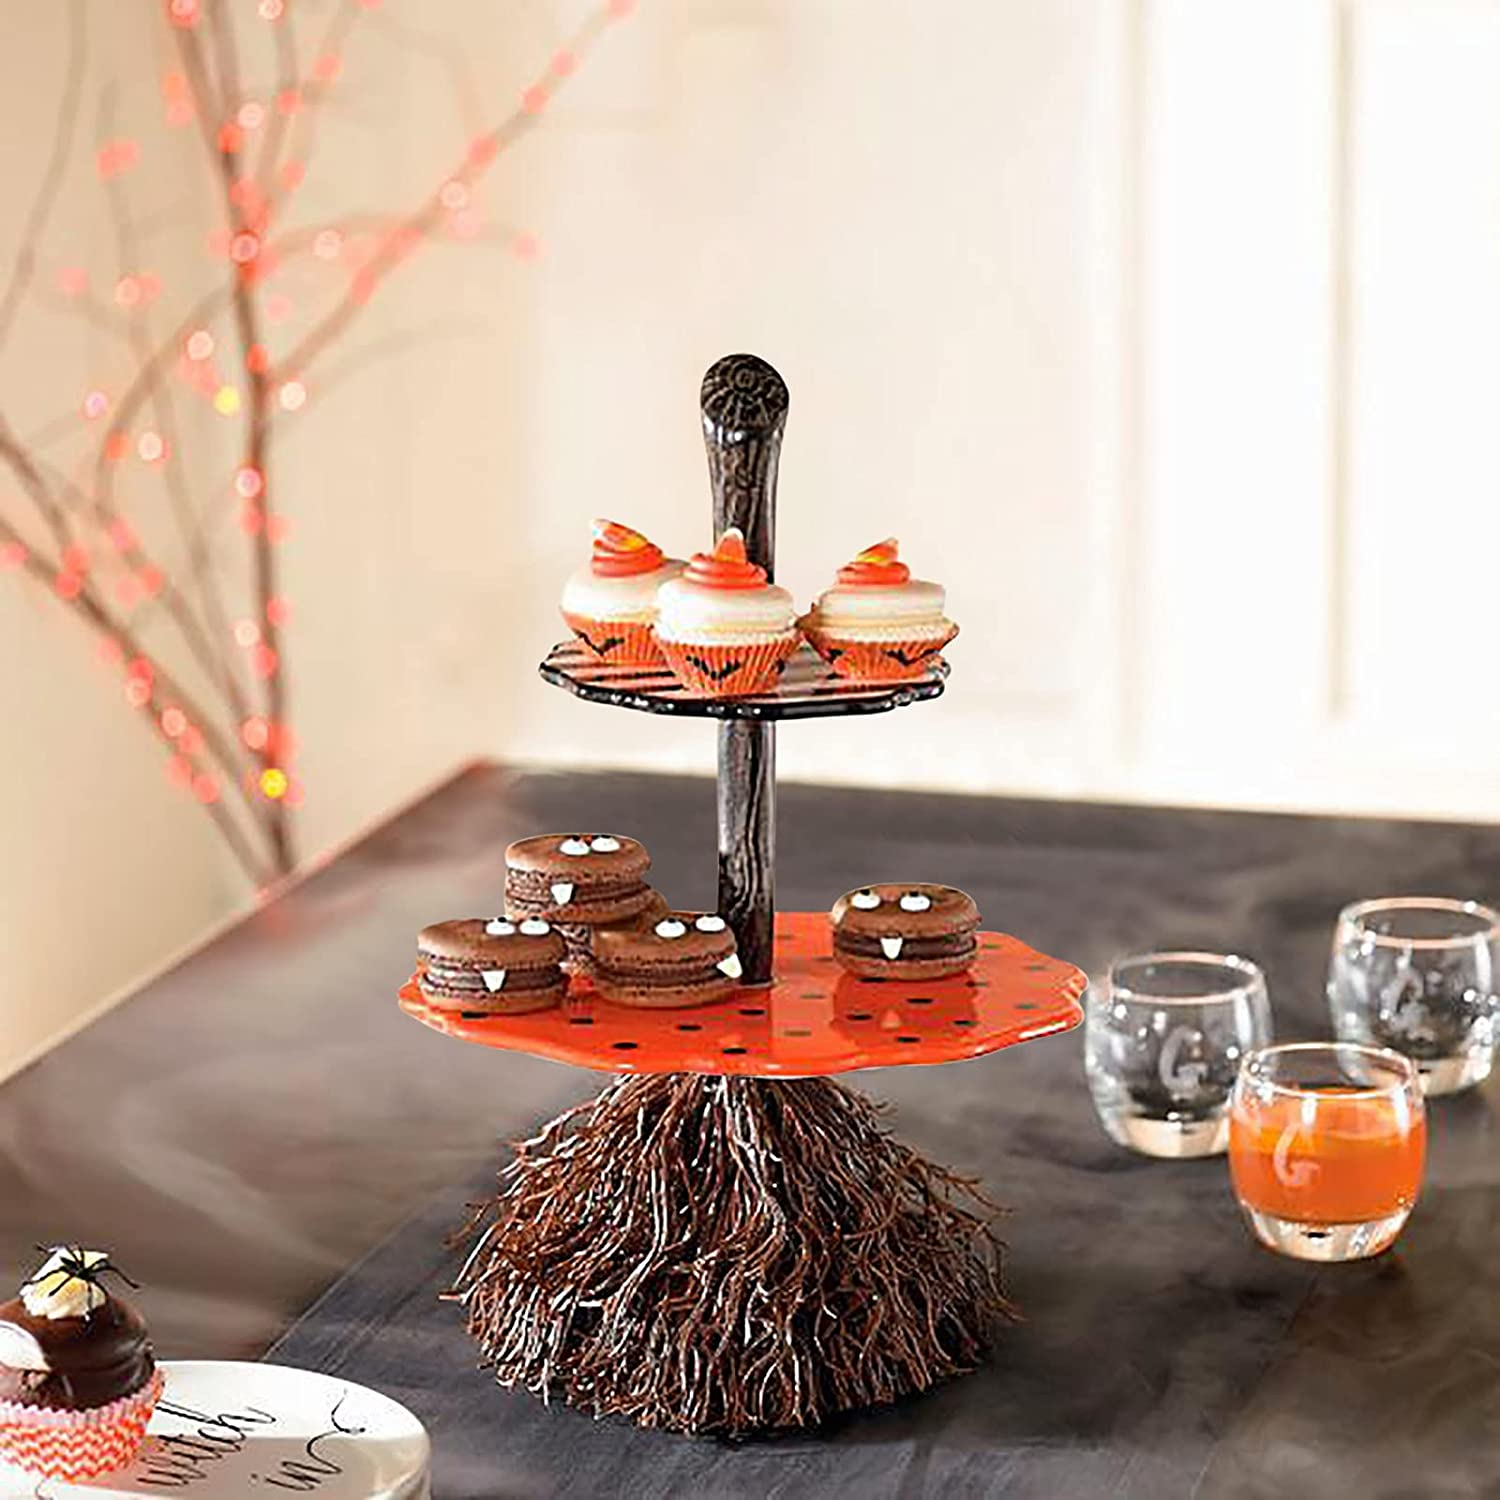 Halloween unisex Home Kitchen Decoration Snack Bowl Stand 3- Max 68% OFF Broomstick